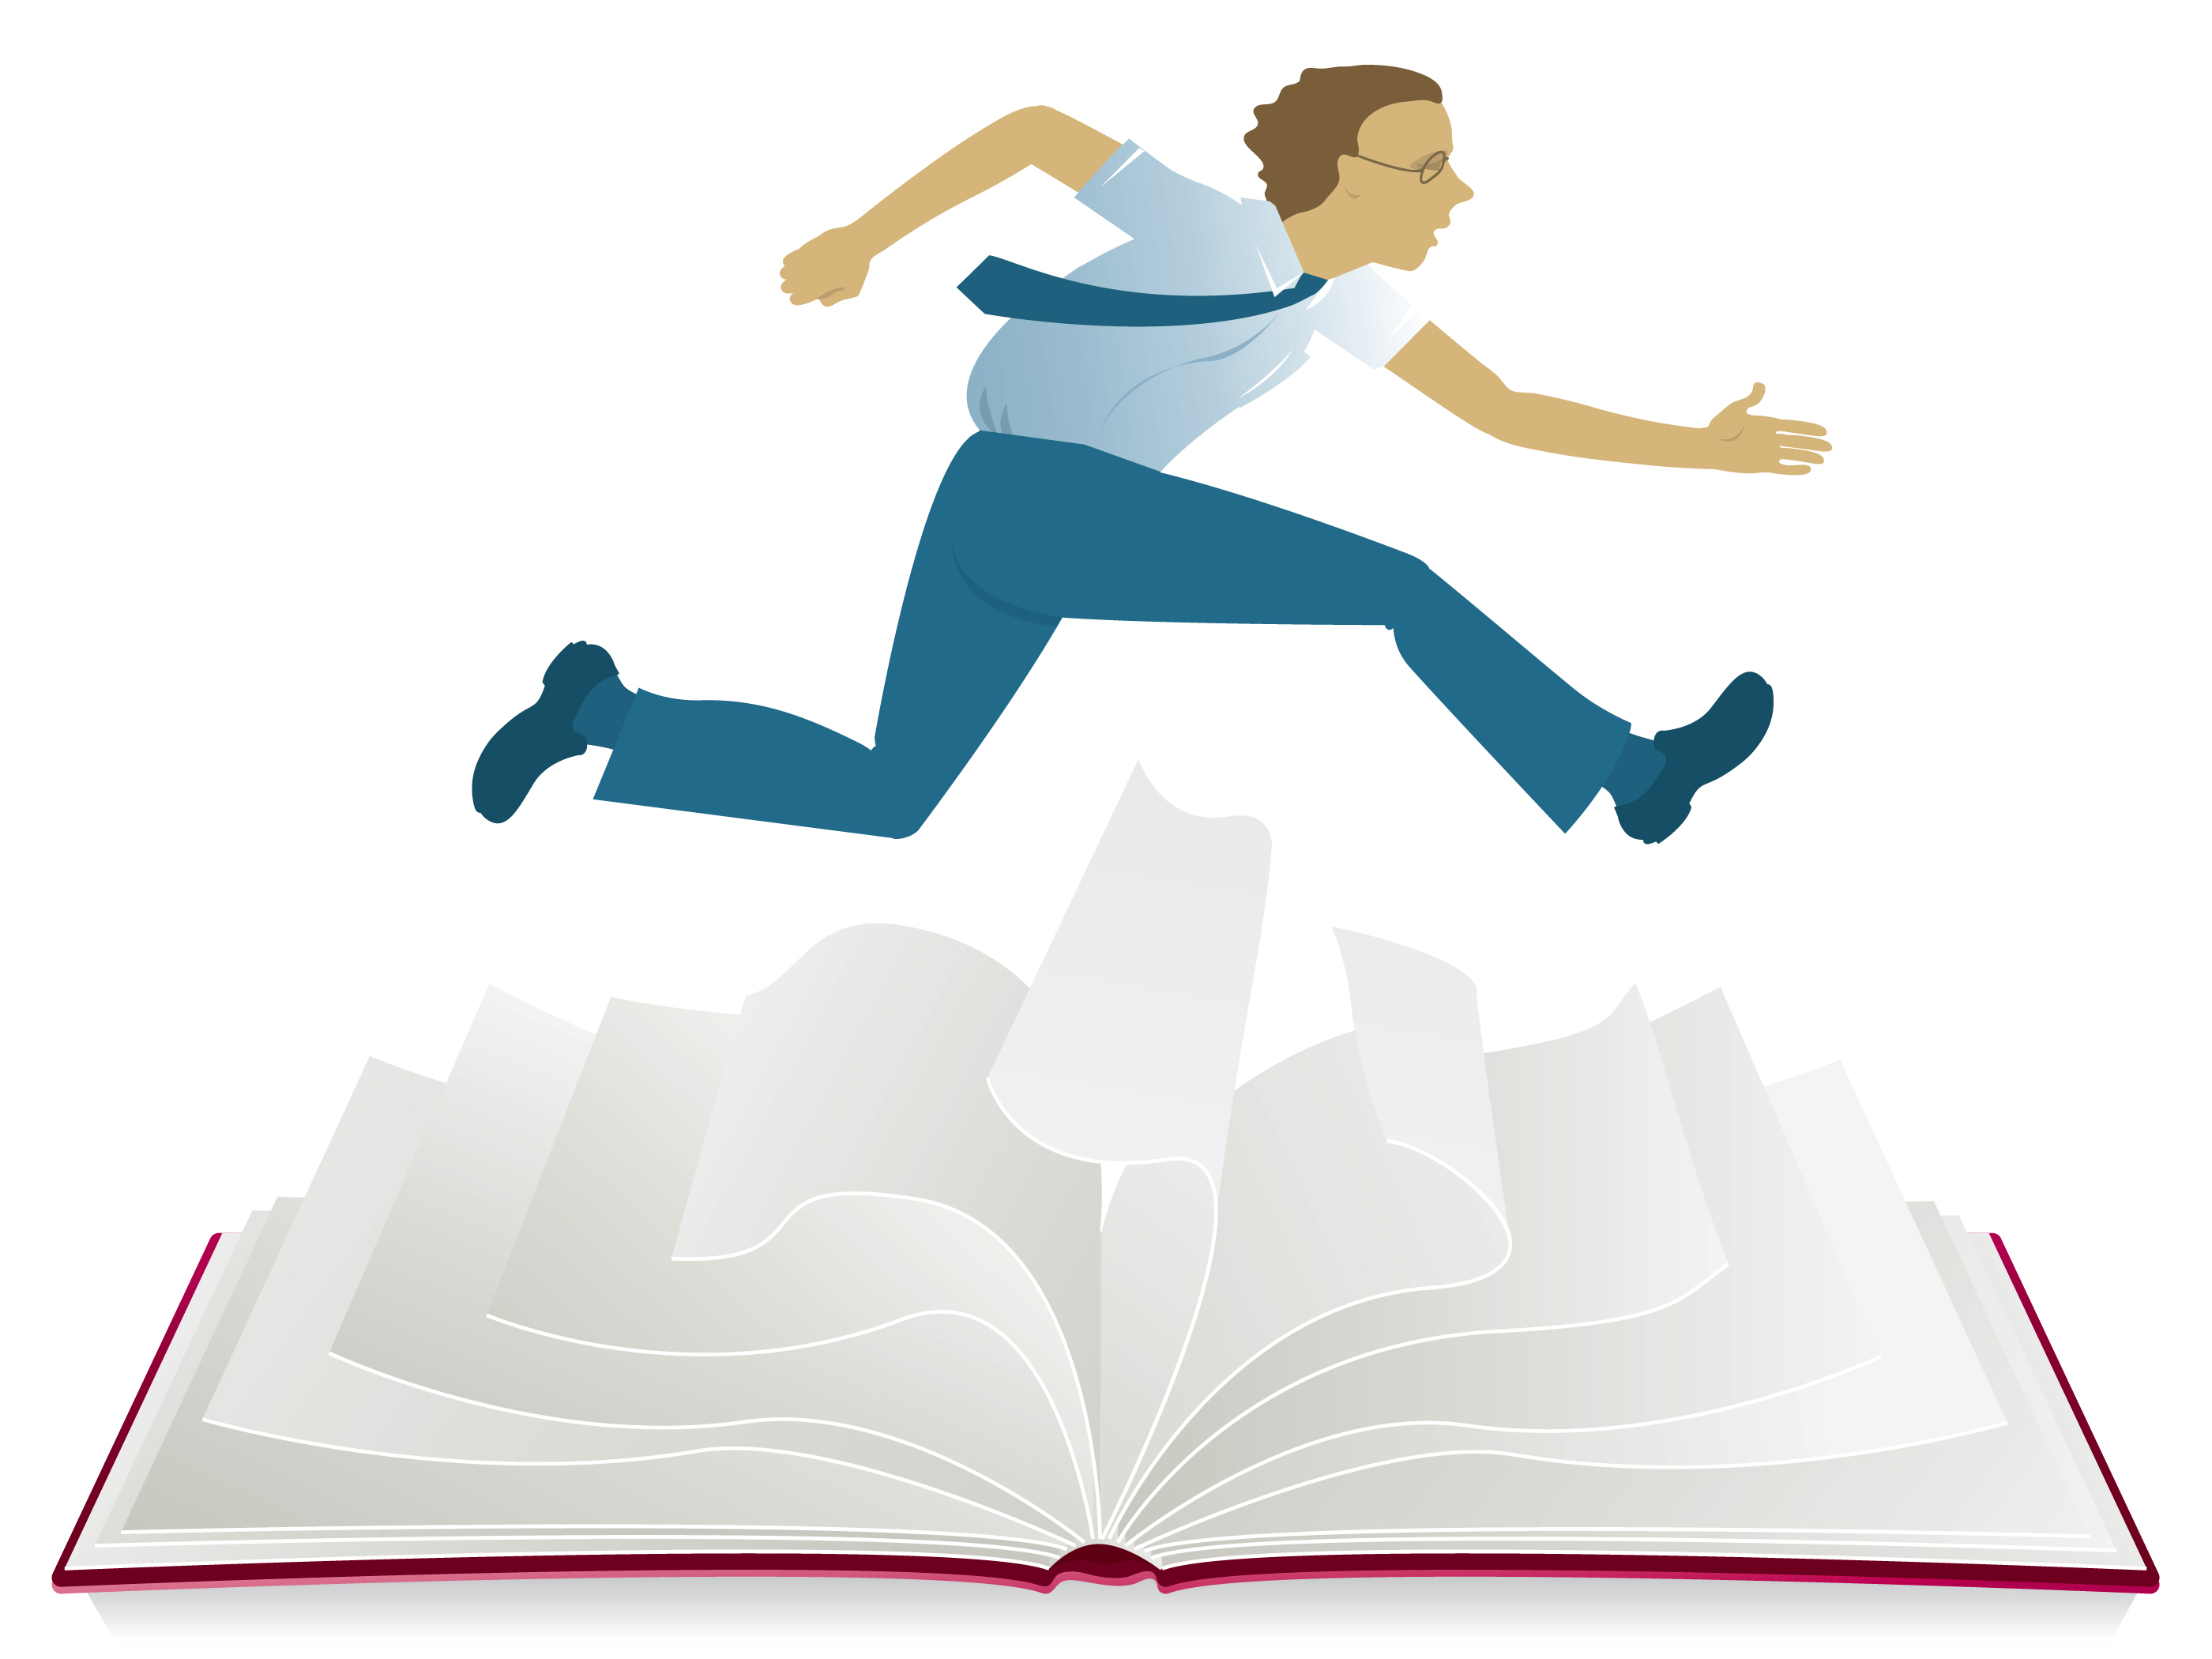 Speed reading claims discredited by new report | Books ...